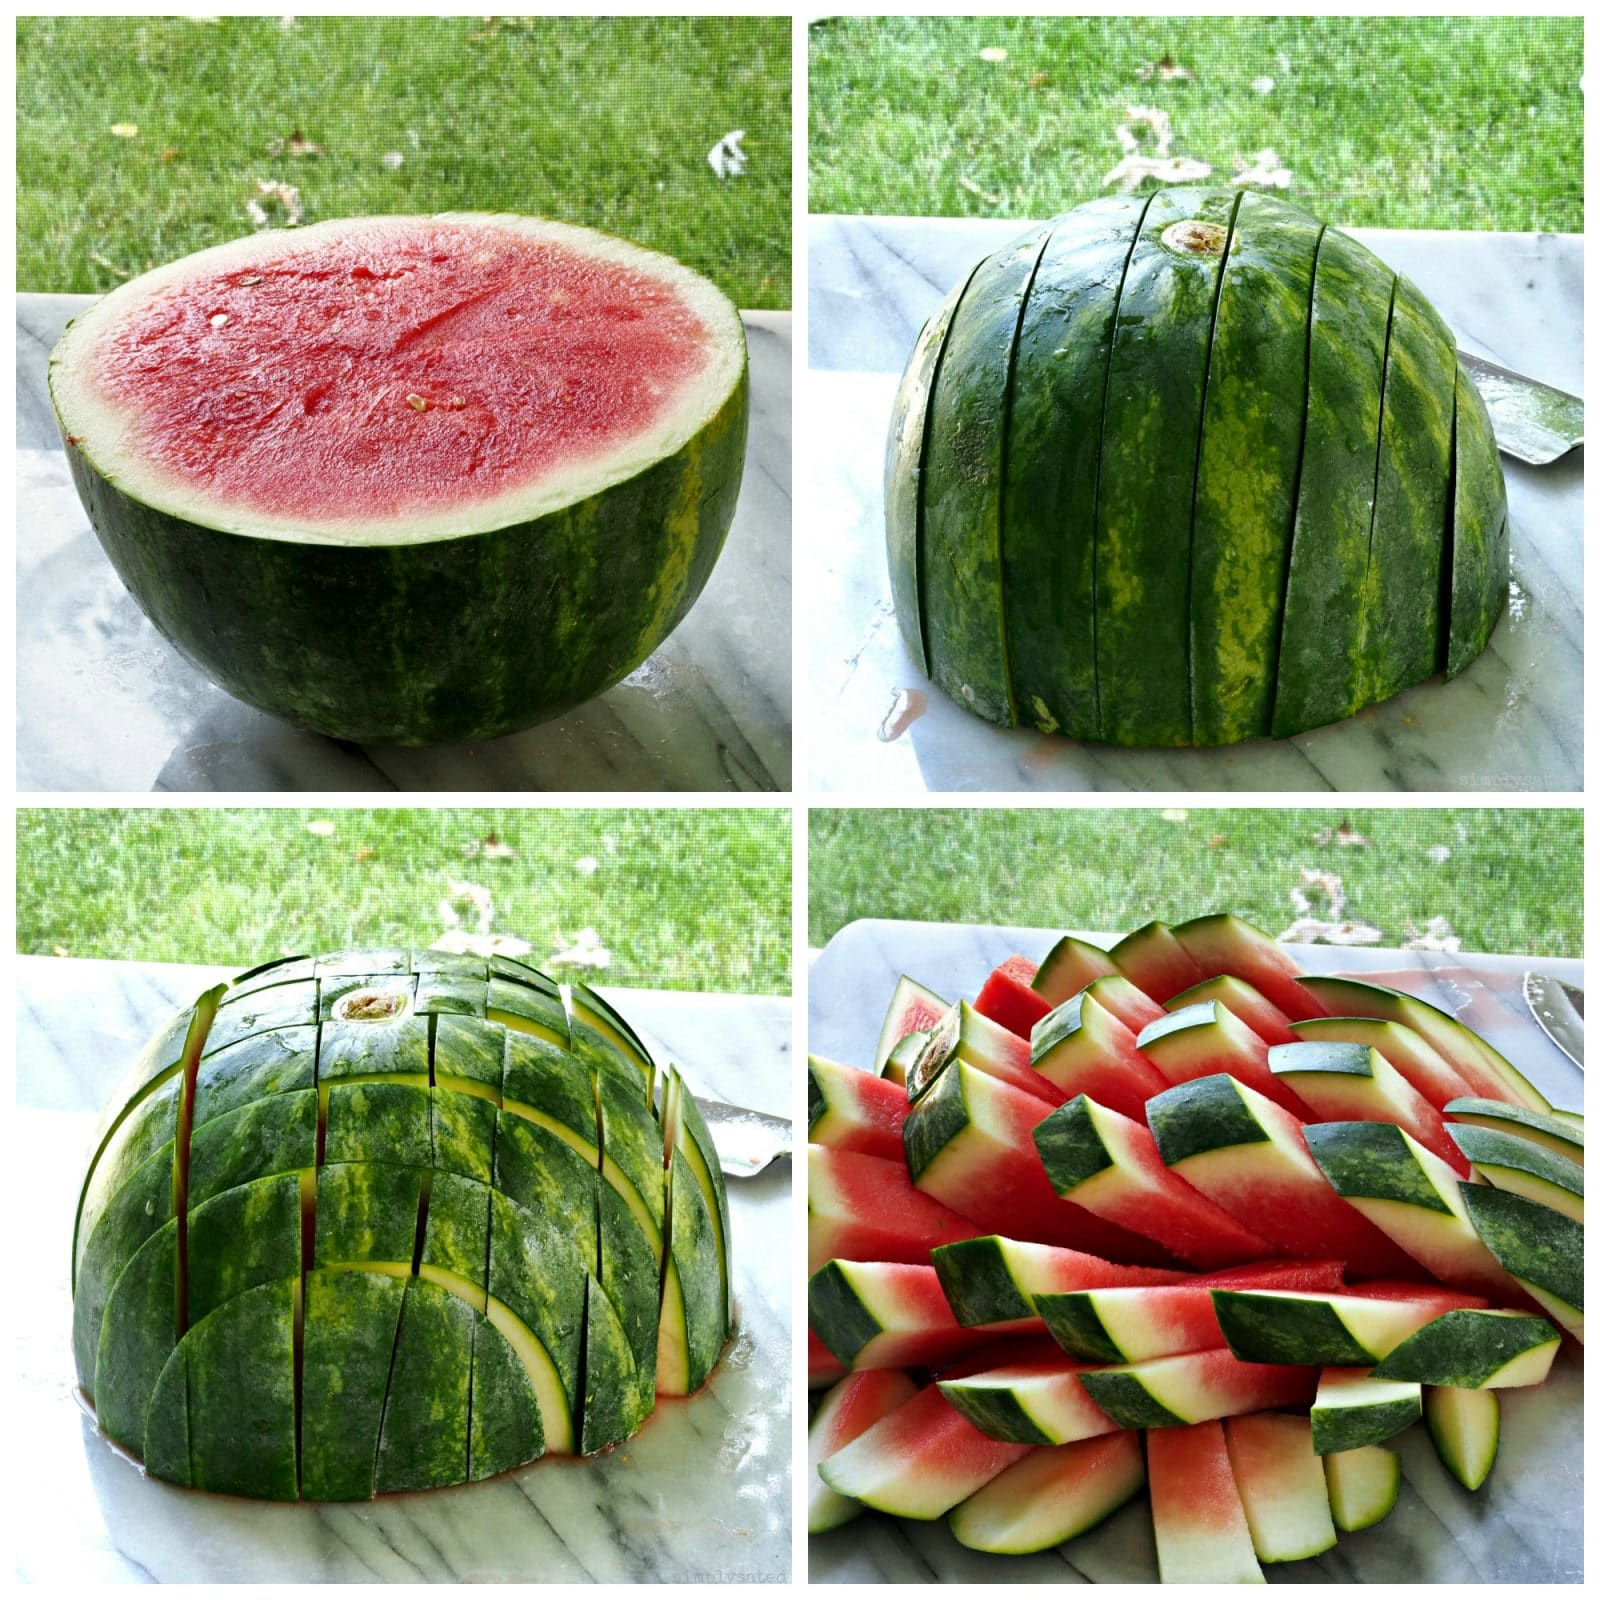 How to cut watermelon sticks for What to serve at a bbq birthday party